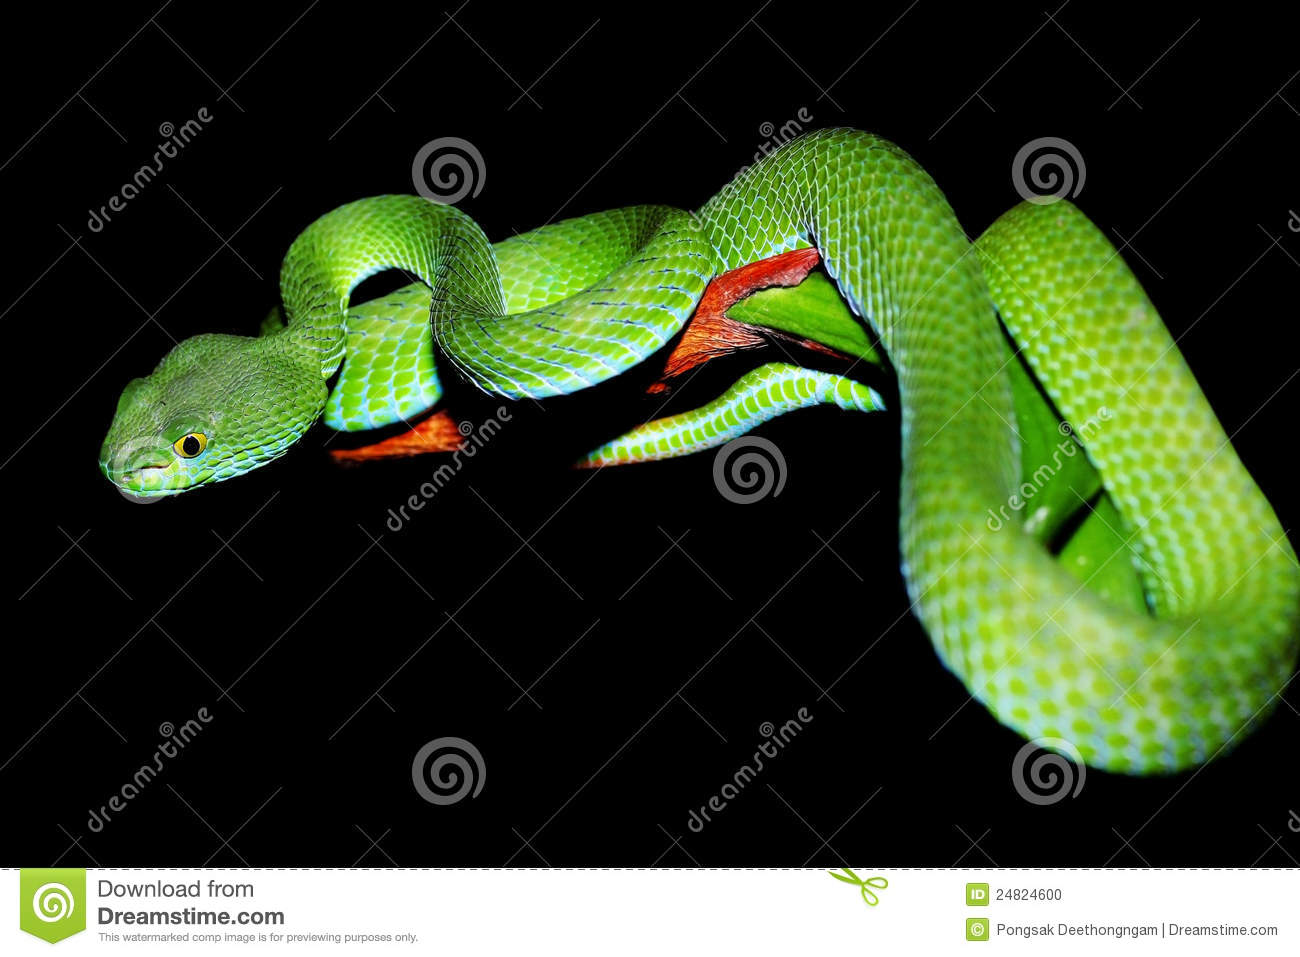 Snake Island Worlds Deadliest Island also Adders 2 in addition Black Adder purzuit also Viper Snake Venom together with Taipan Fangs. on viper fangs